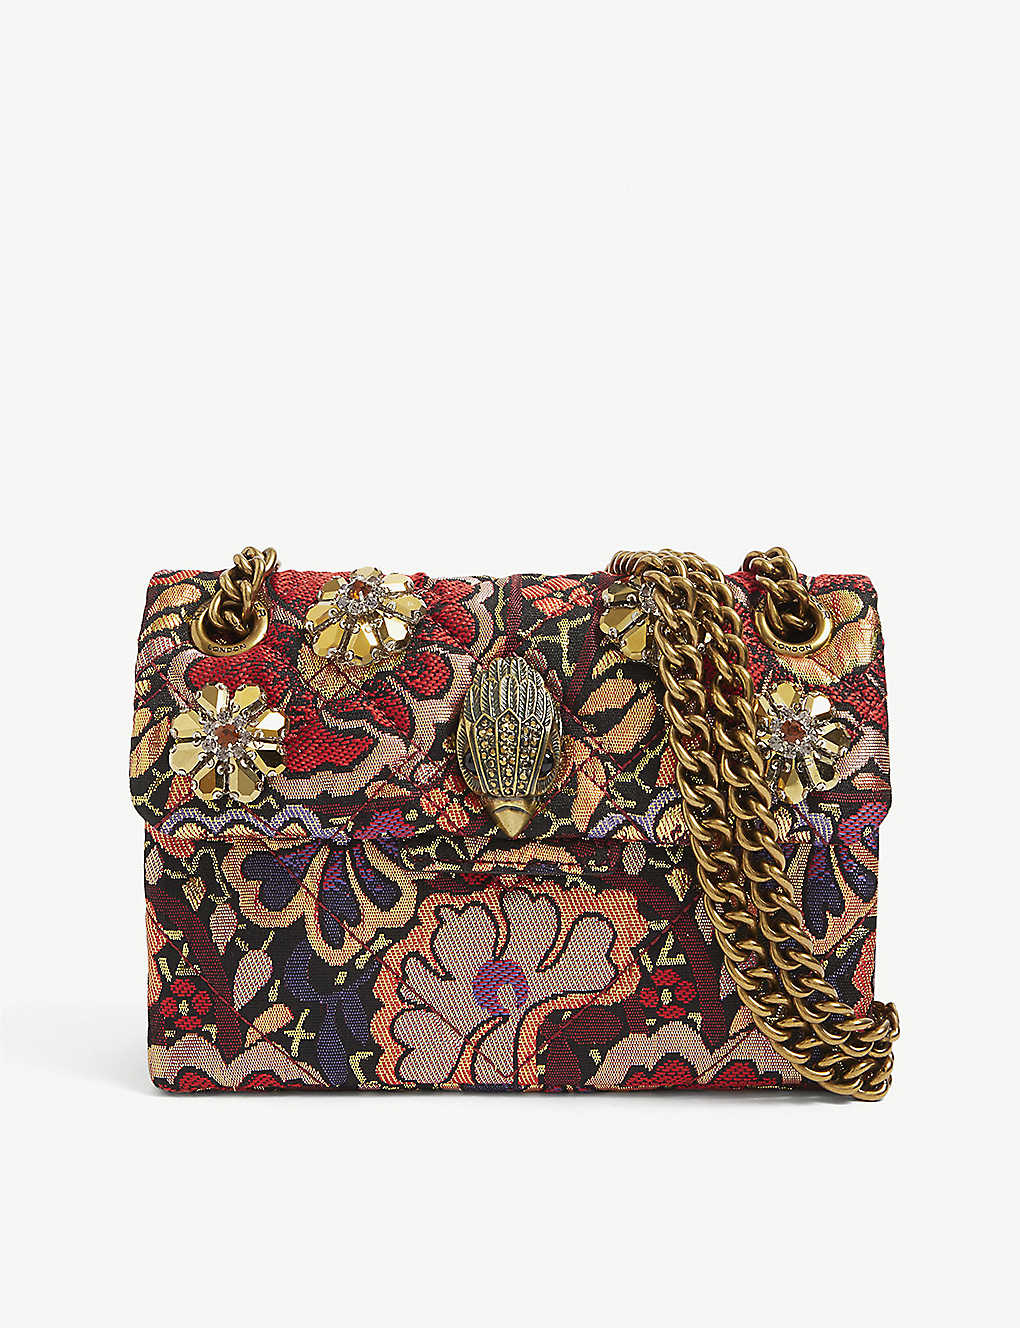 KURT GEIGER LONDON: Mini Kensington woven bag